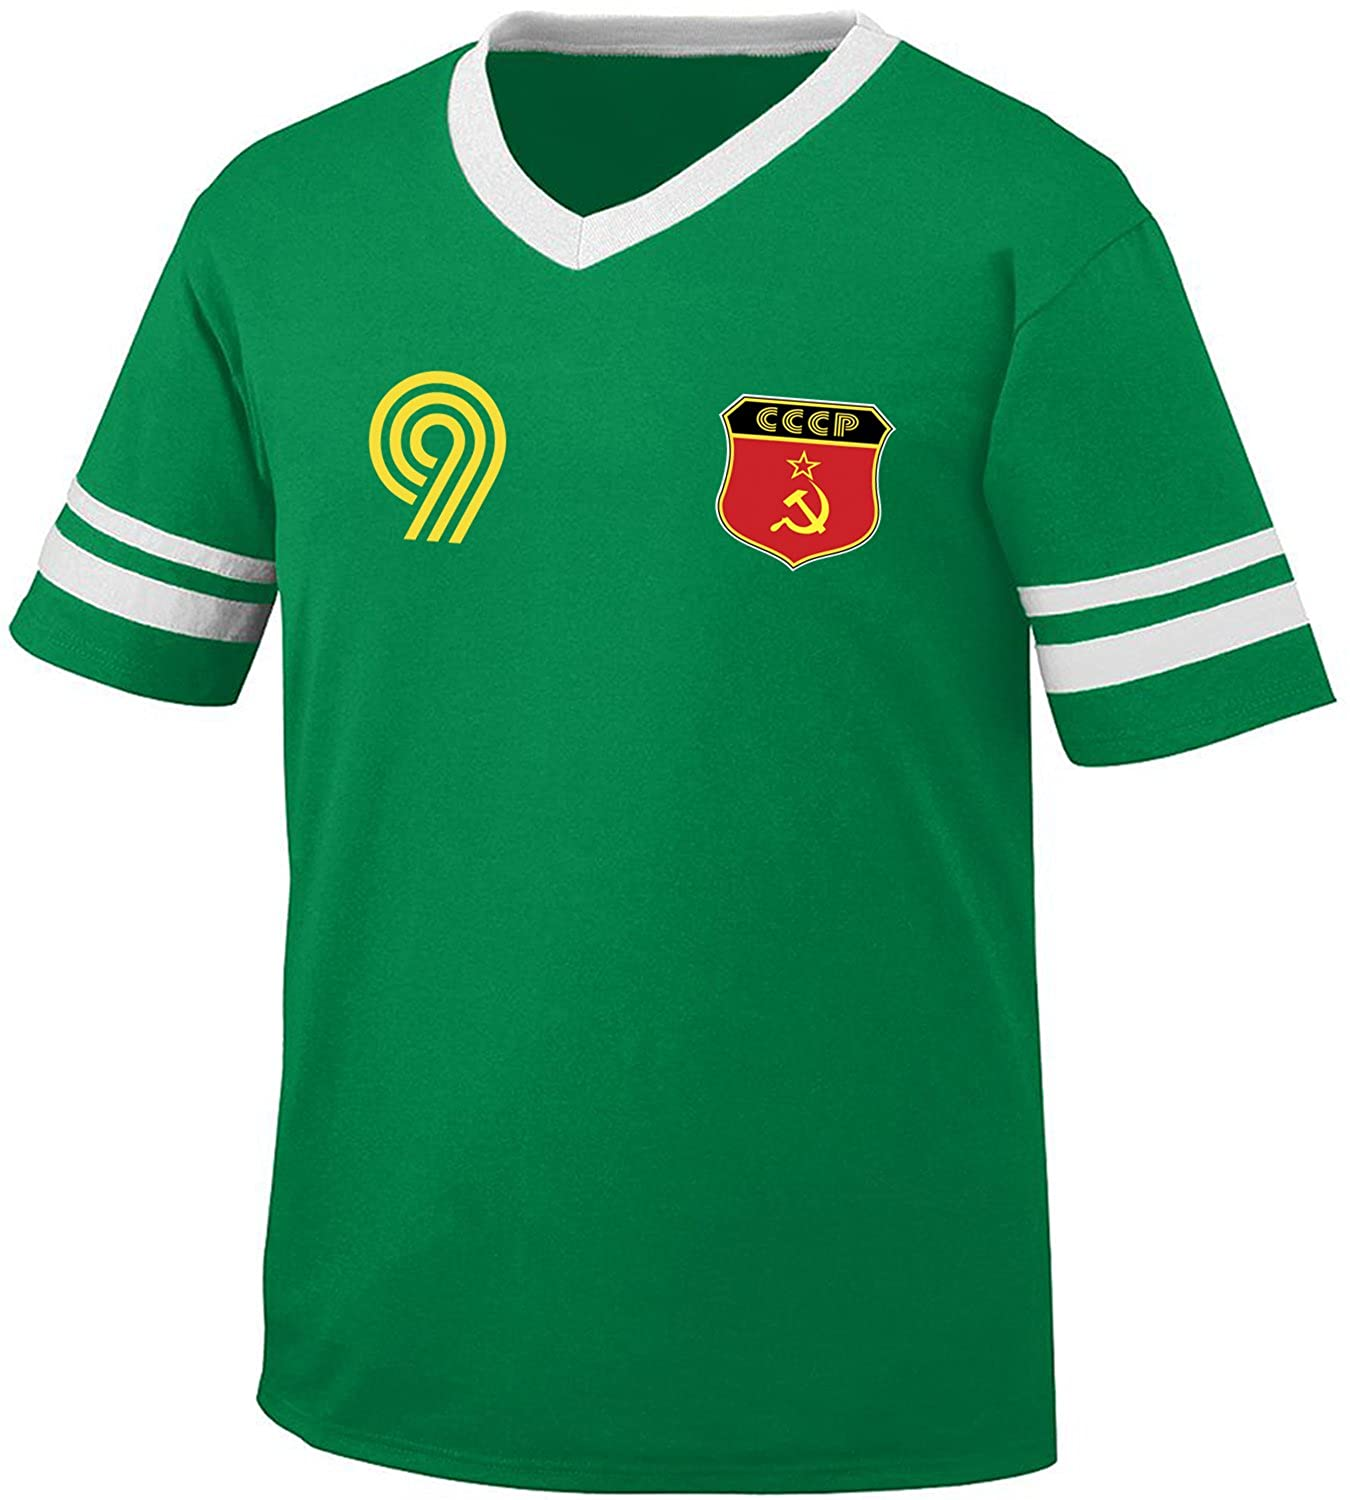 competitive price c04f6 c2aed Amdesco CCCP Soviet Union USSR Soccer Style Crest and Number Men's Retro  Soccer Ringer T-Shirt